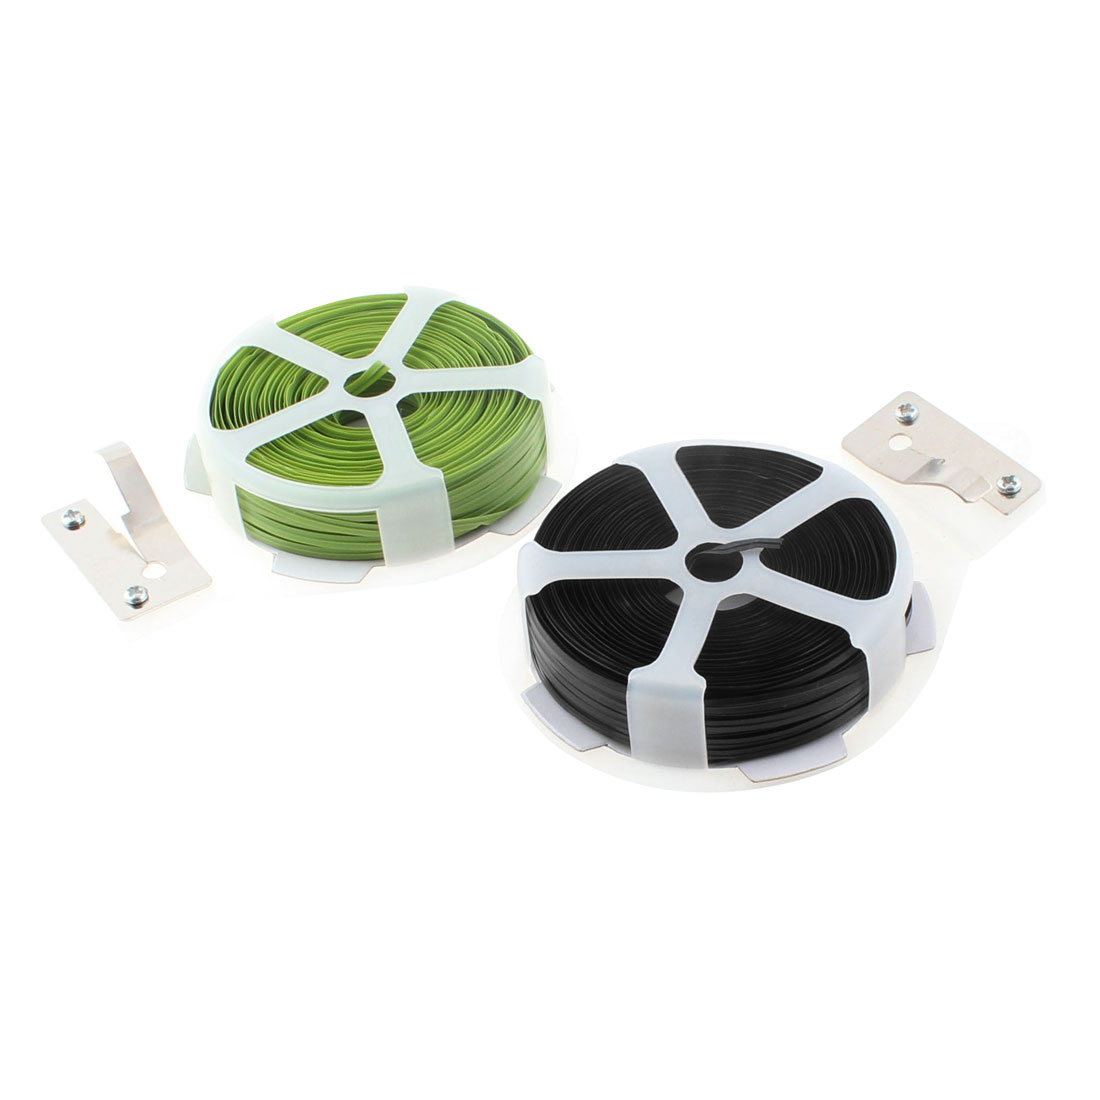 Gardening Packing Crafts Twist Tie Roll Strapping String Tape Cutter 2pcs